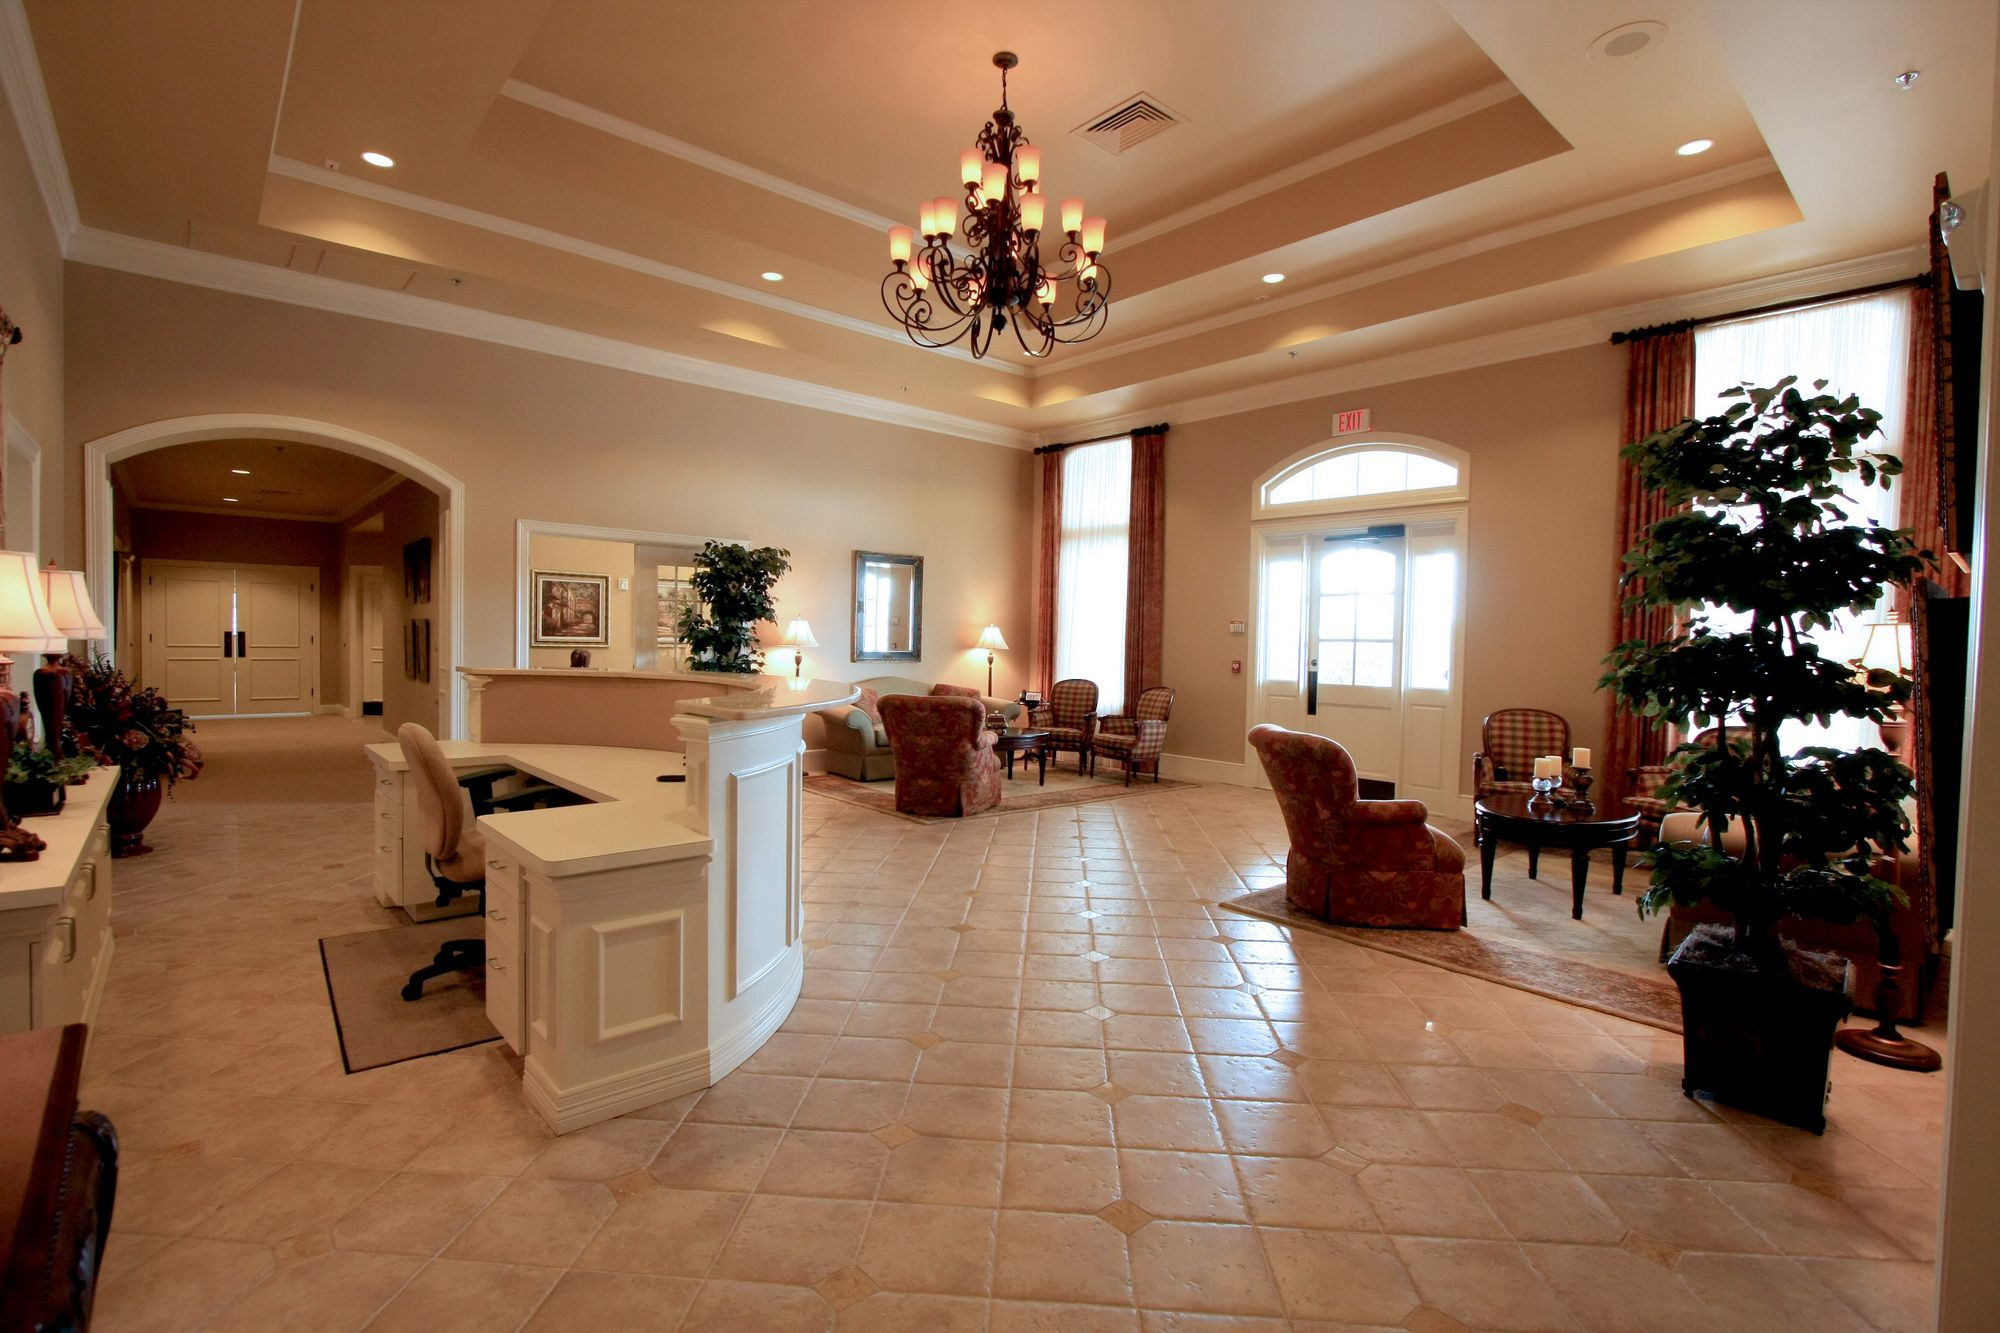 Funeral Home Interior Colors Interior Decor Which Fit With The French Country Architecture House Design Interior House Colors Home